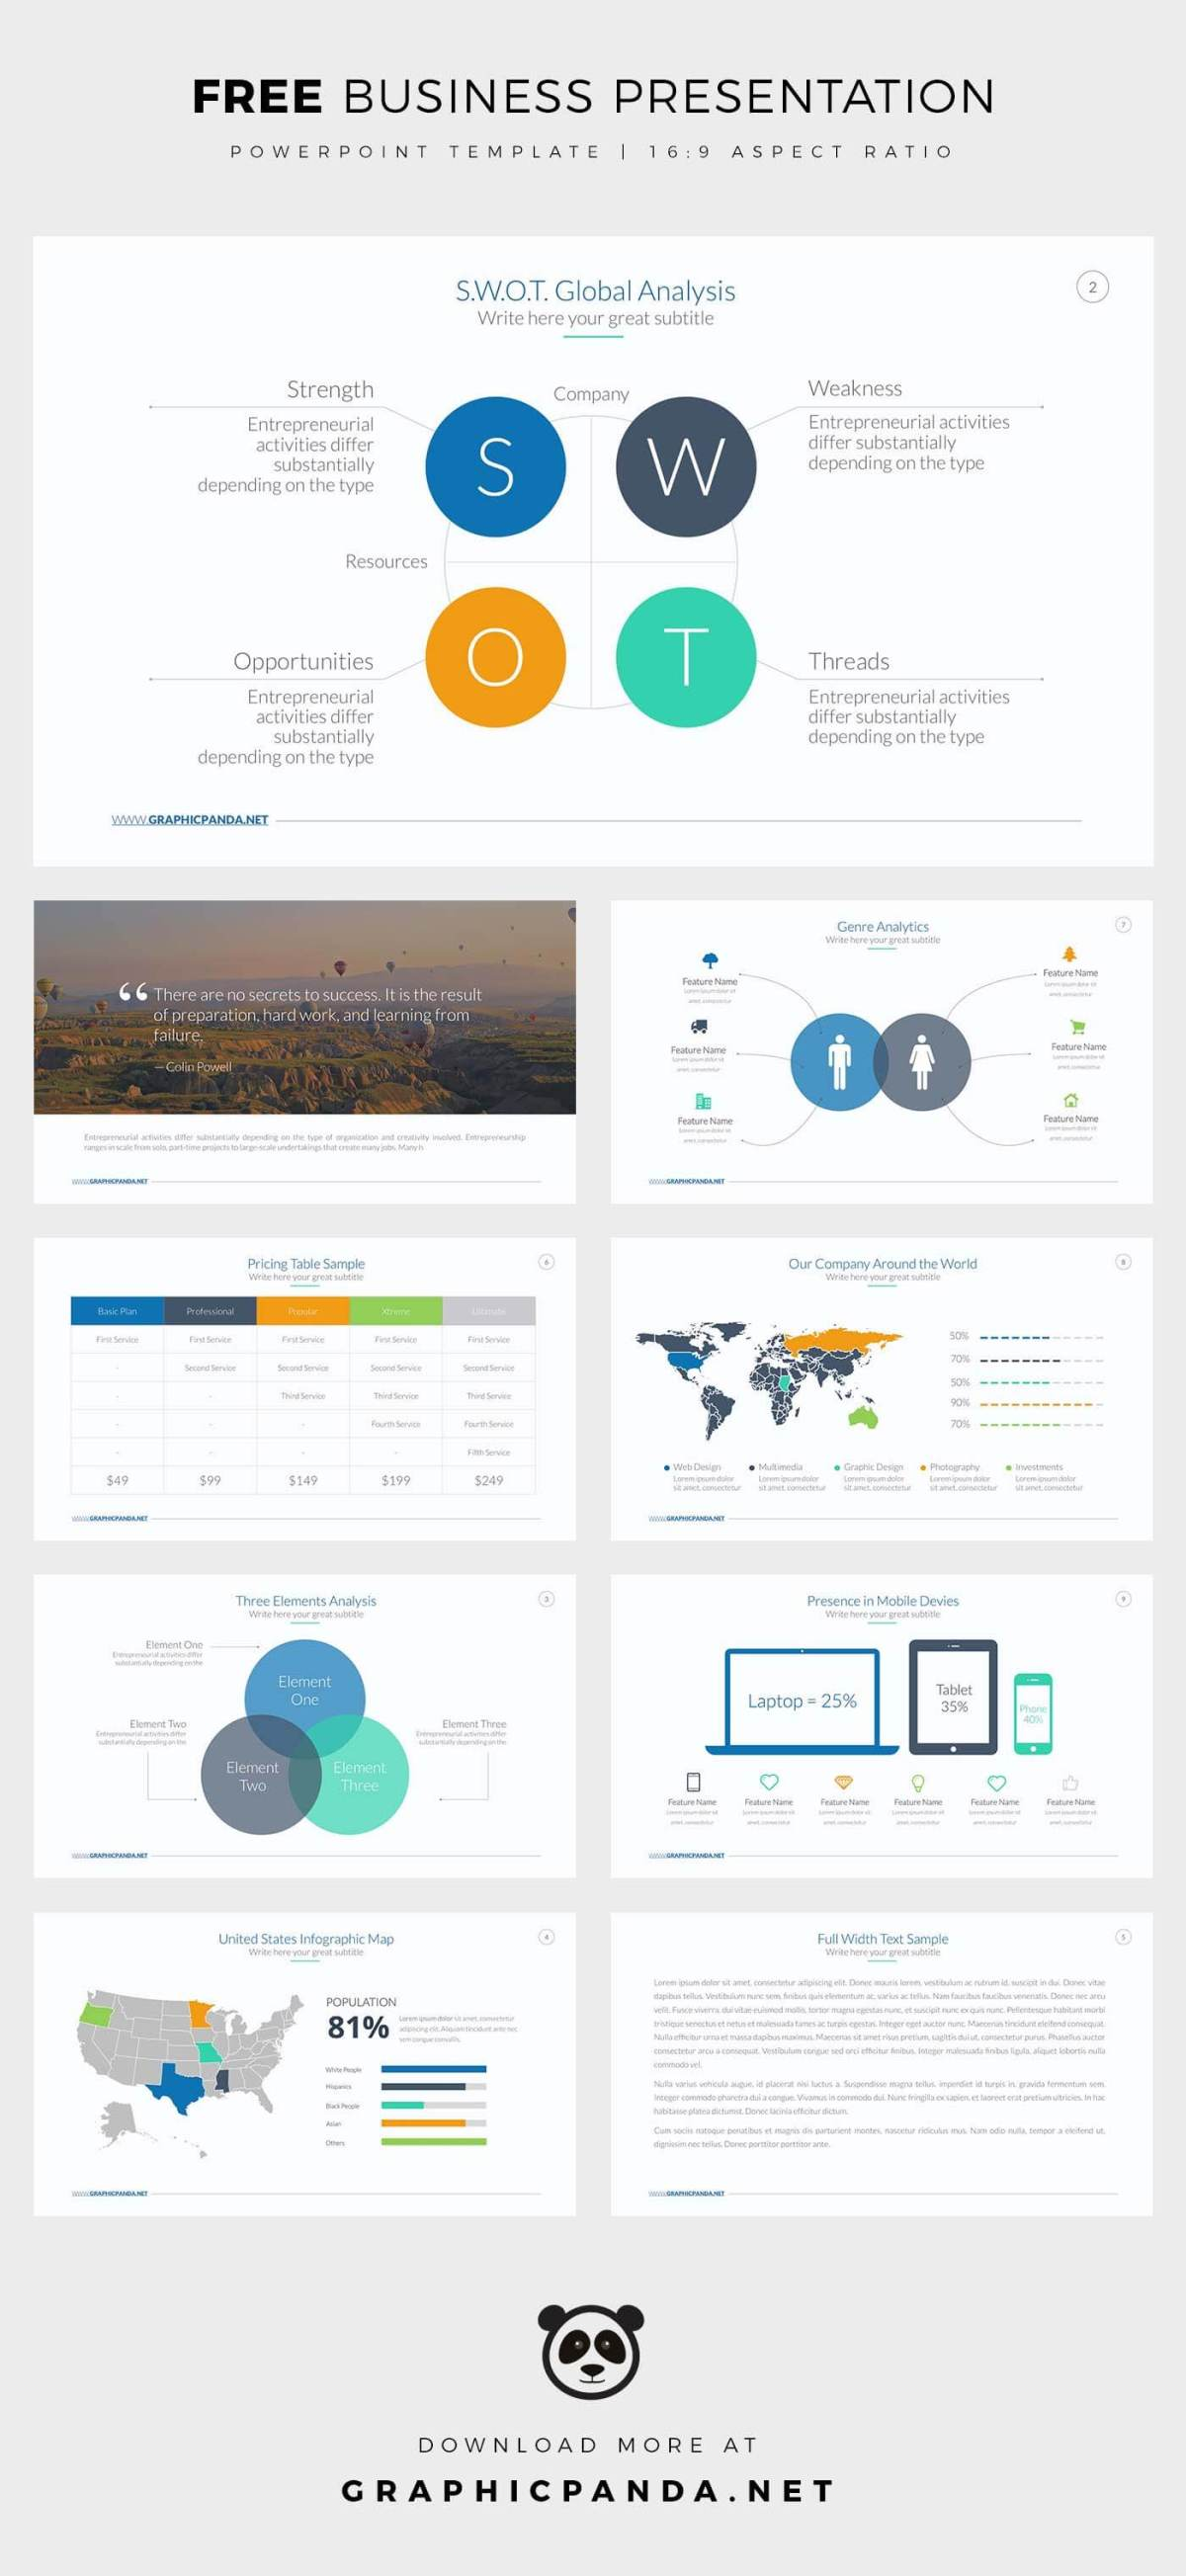 Free business powerpoint templates professional and easy to edit free business powerpoint template accmission